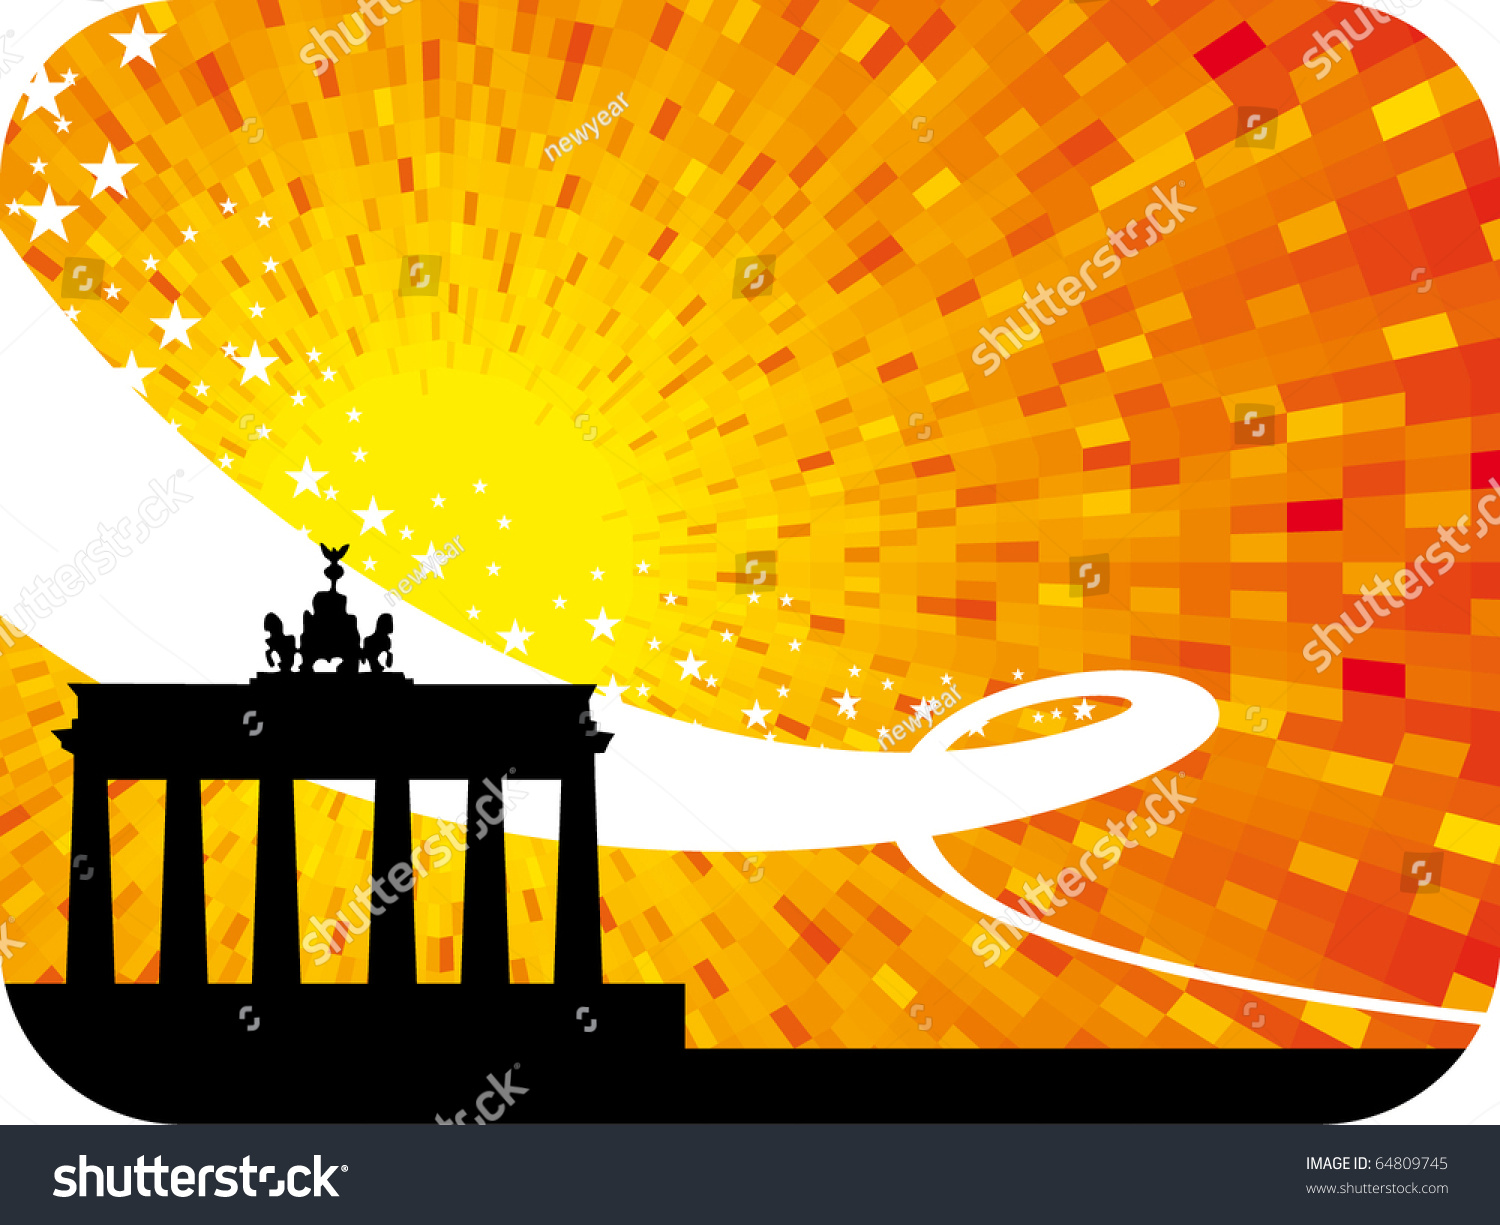 ... city orange shine sunset background with black silhouette of city